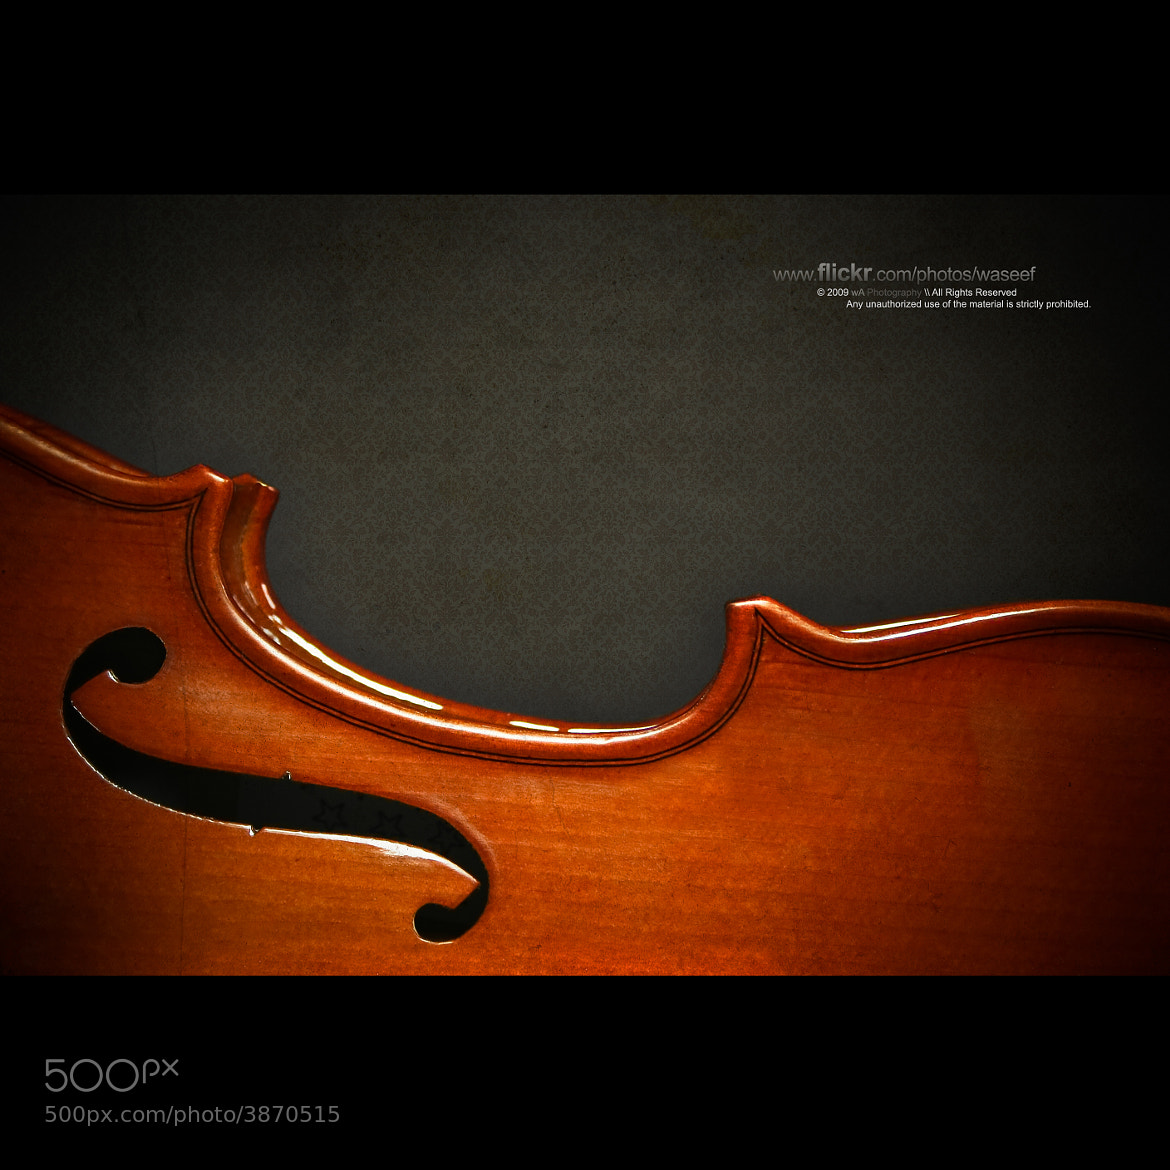 Photograph Violin by Waseef Akhtar on 500px